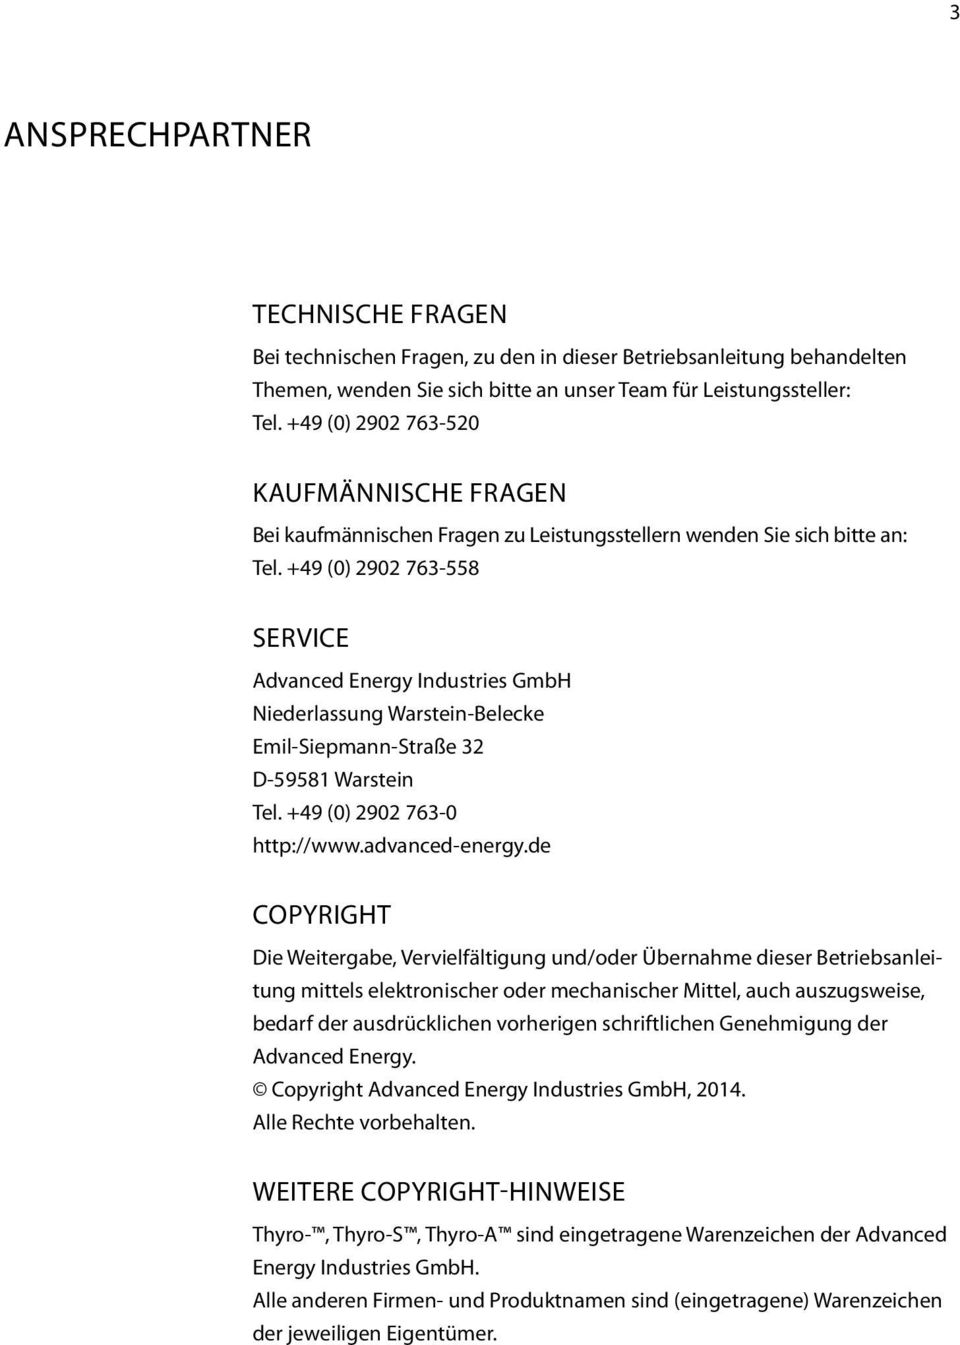 +49 (0) 2902 763-558 ServicE Advanced Energy Industries GmbH Niederlassung Warstein-Belecke Emil-Siepmann-Straße 32 D-59581 Warstein Tel. +49 (0) 2902 763-0 http://www.advanced-energy.